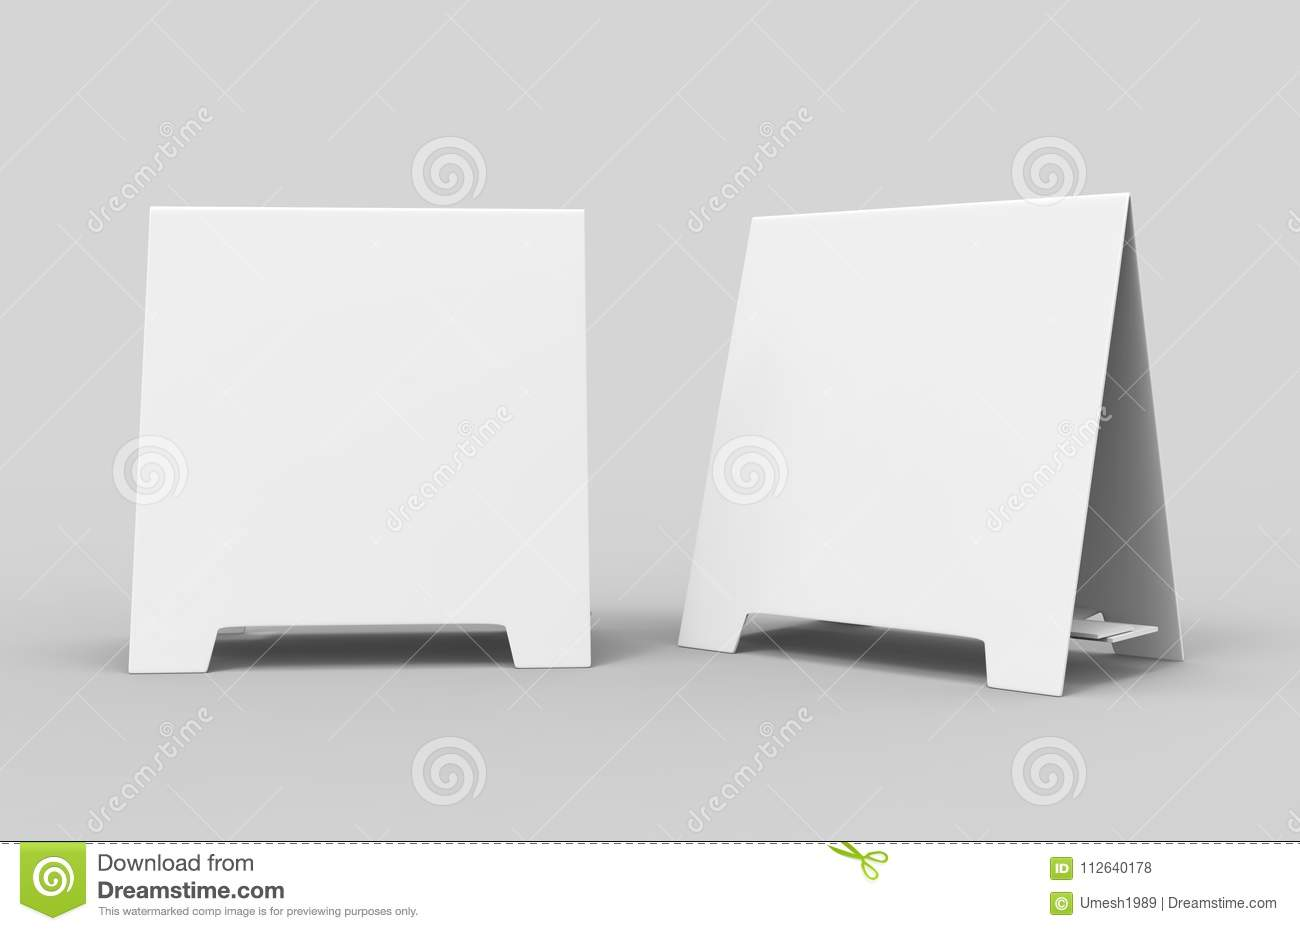 graphic relating to Printable Tent Card named Pill Tent Card Talkers Advertising Menu Card White Blank